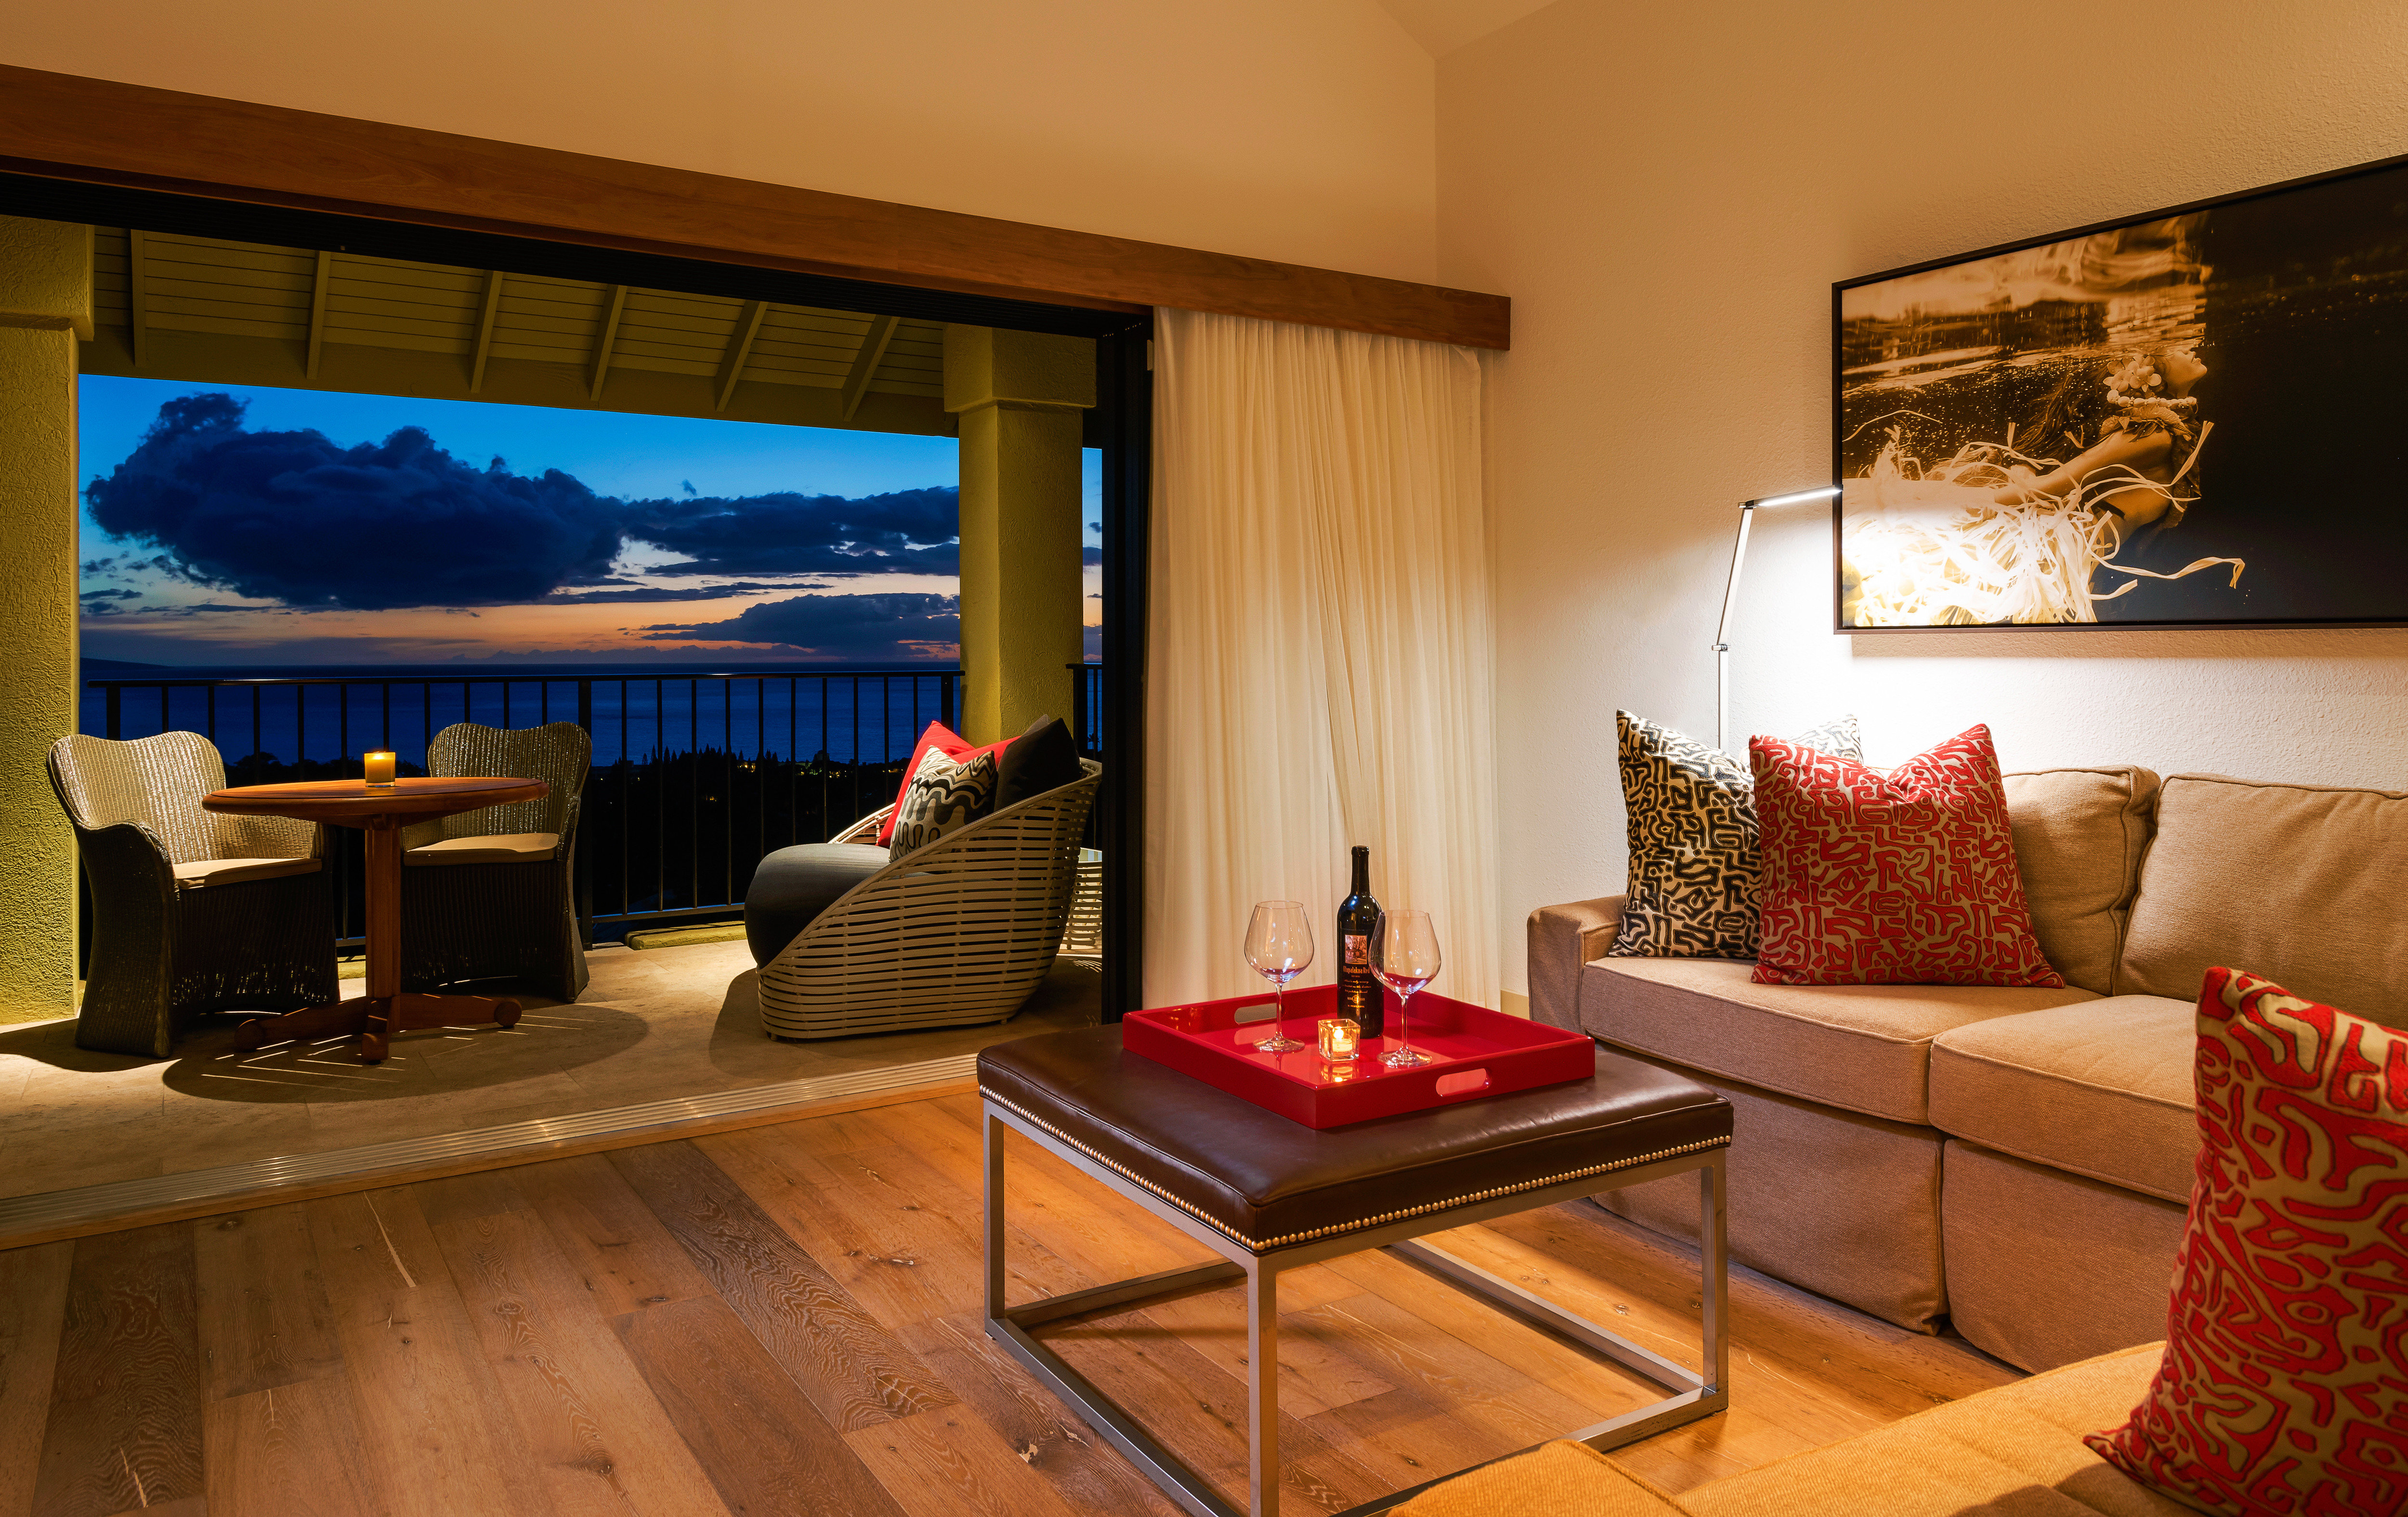 Balcony Classic Drink Hotels Island Romance Scenic views Sunset property living room Suite home Villa Resort condominium cottage flat